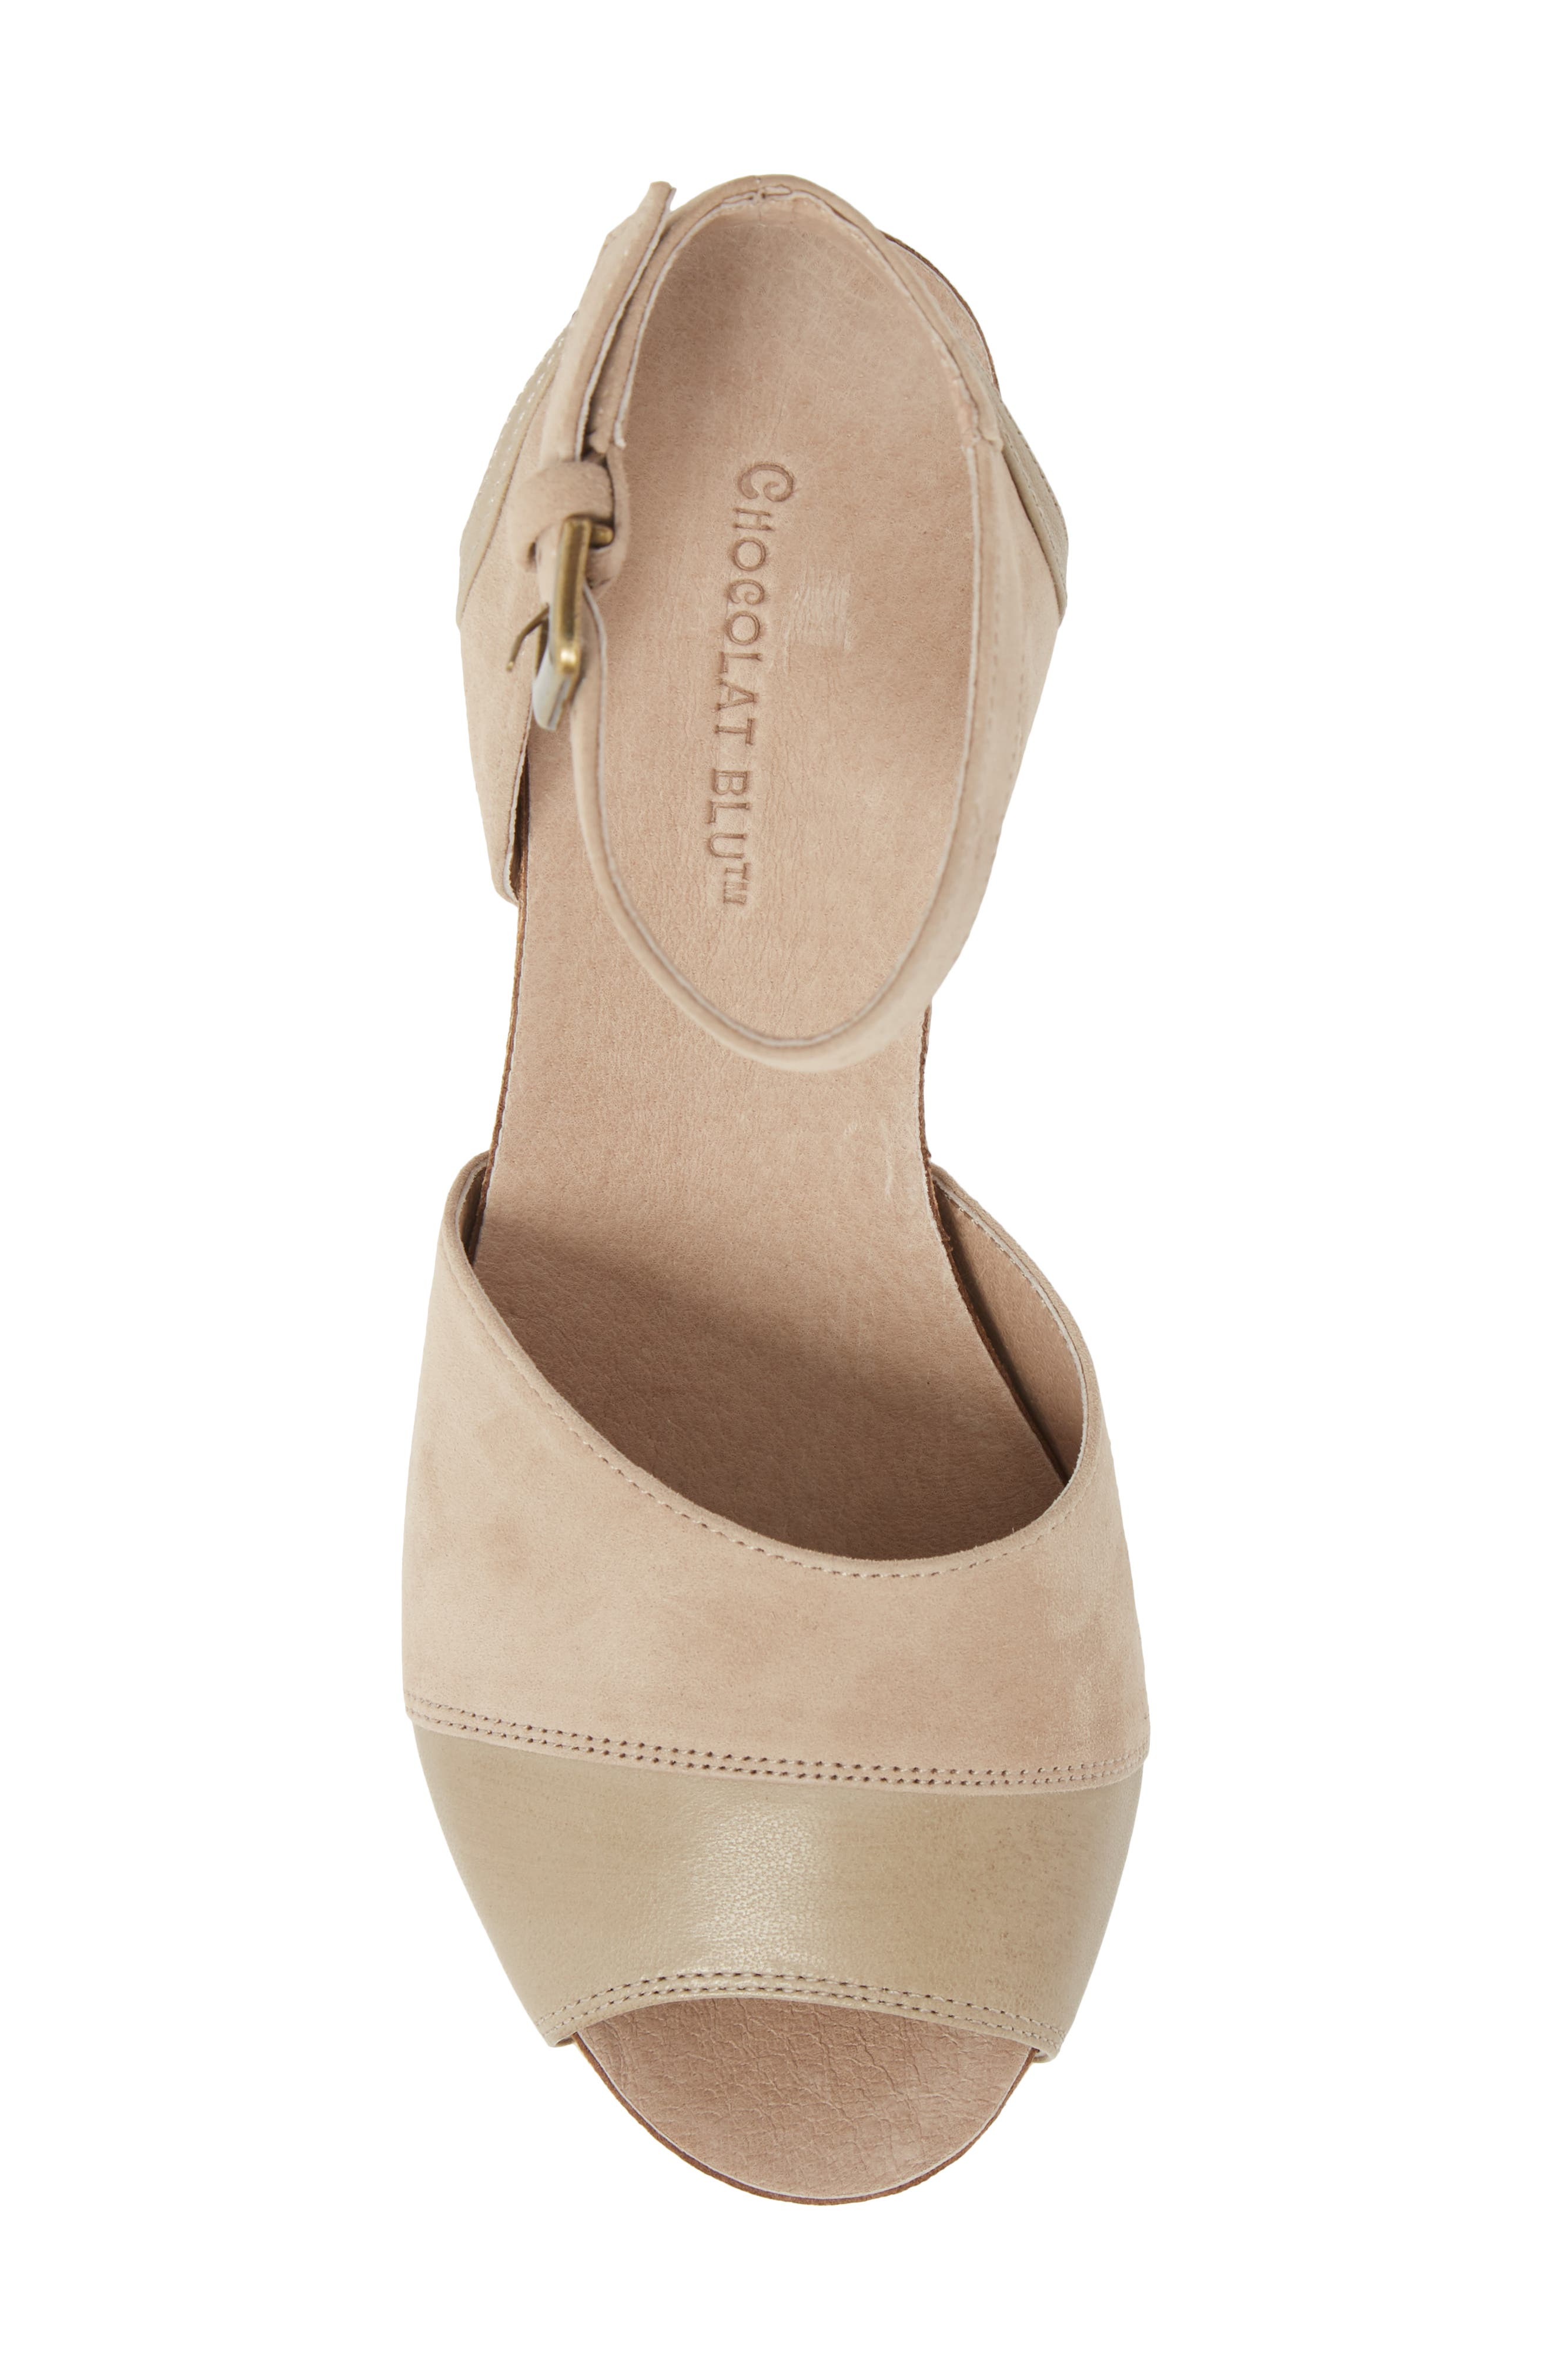 Chocolate Blu Welby Ankle Strap Wedge Sandal,                             Alternate thumbnail 5, color,                             TAUPE SUEDE